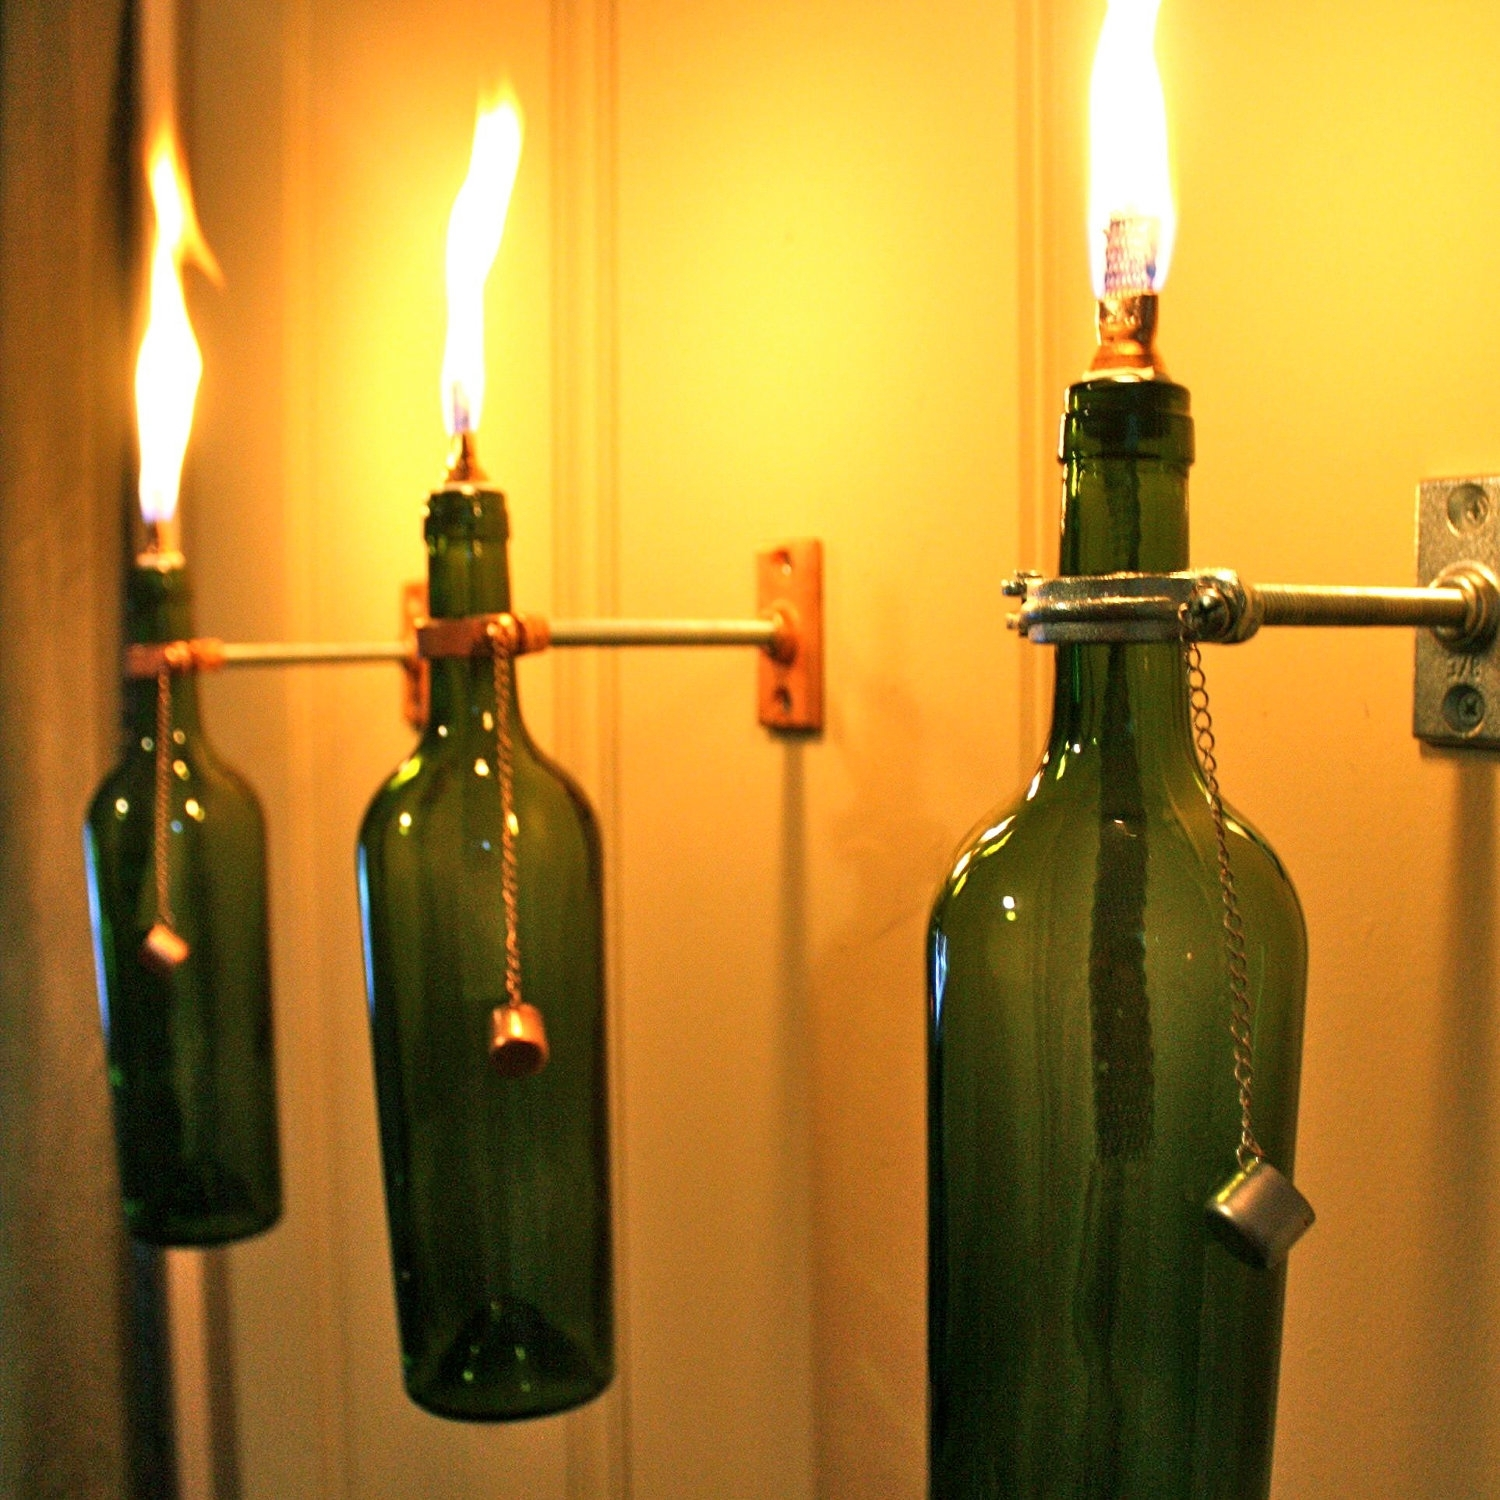 Inspiration about Diy : Wine Bottle Lamp Diy Repurposed Christmas Lights Outdoor For Making Outdoor Hanging Lights From Wine Bottles (#13 of 15)